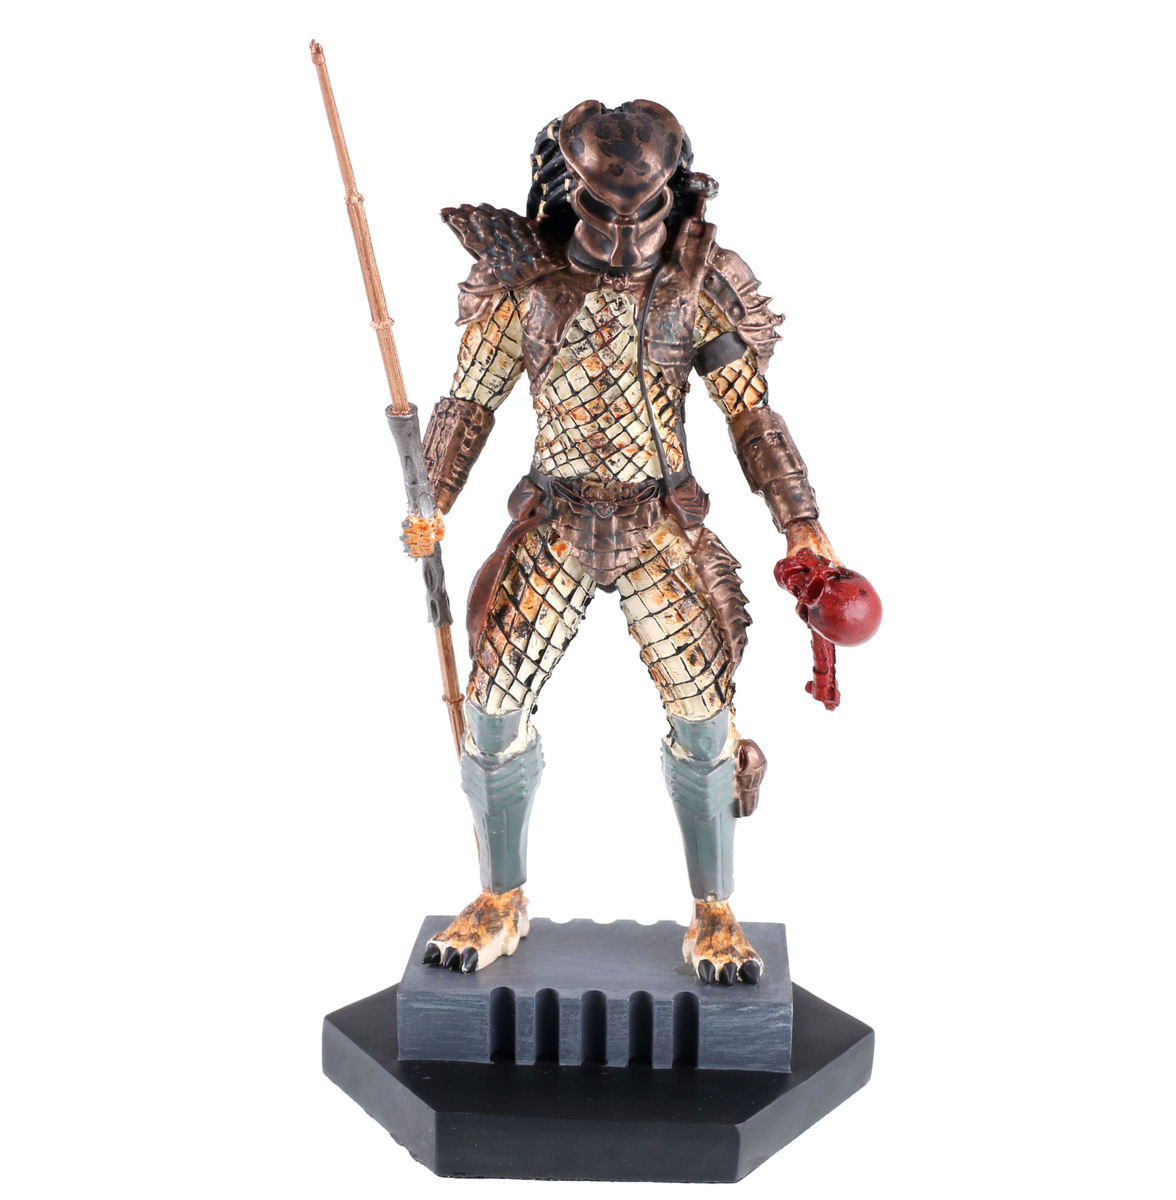 figurka Alien & Predator - Collection Hunter Predator - EAMOAPR172674